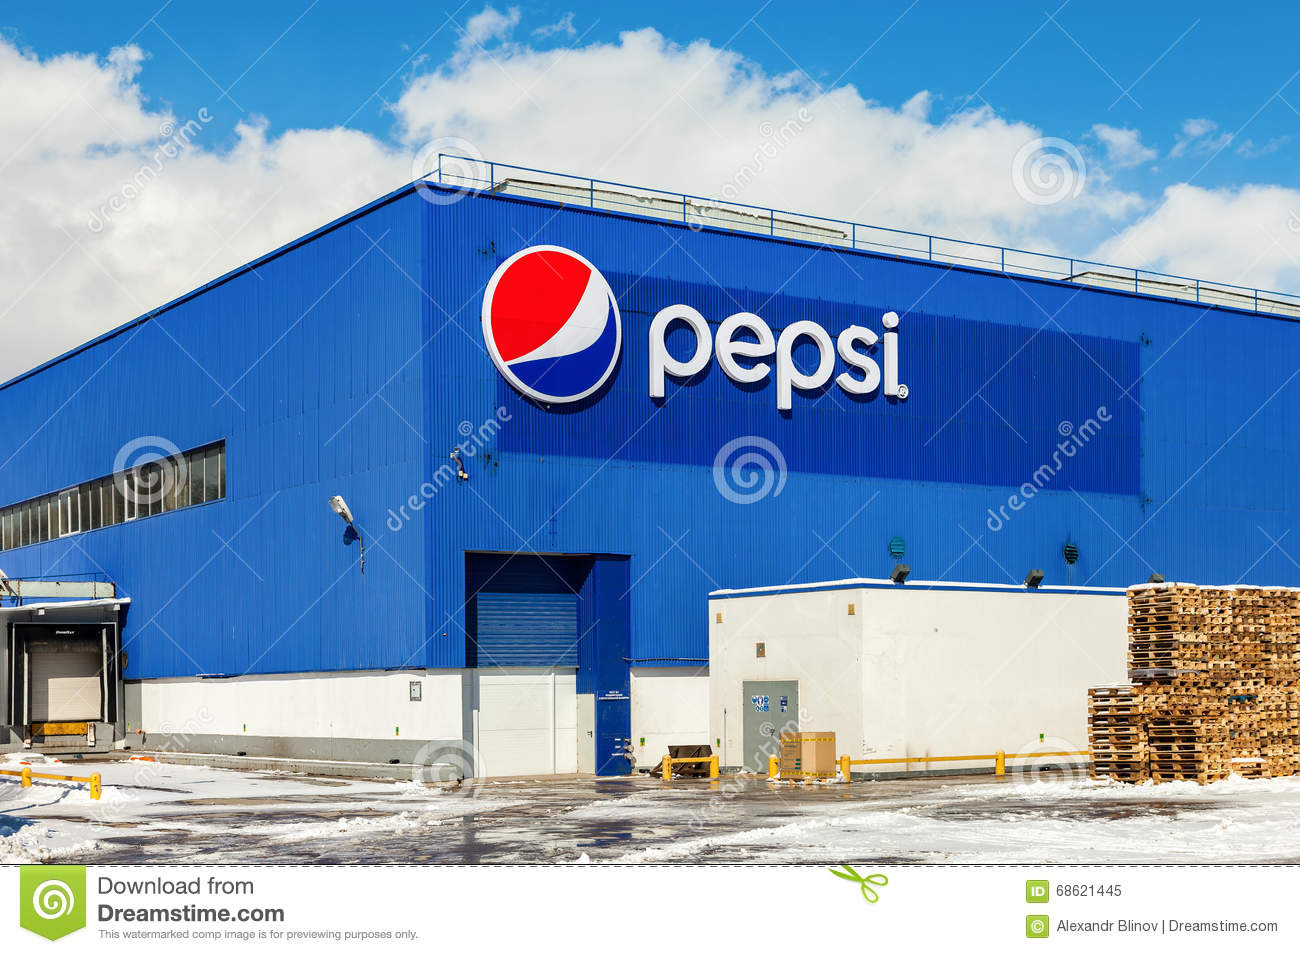 pepsico is a multinational corporation Essay example: coca-cola and pepsico in india: a question of multinational corporation.